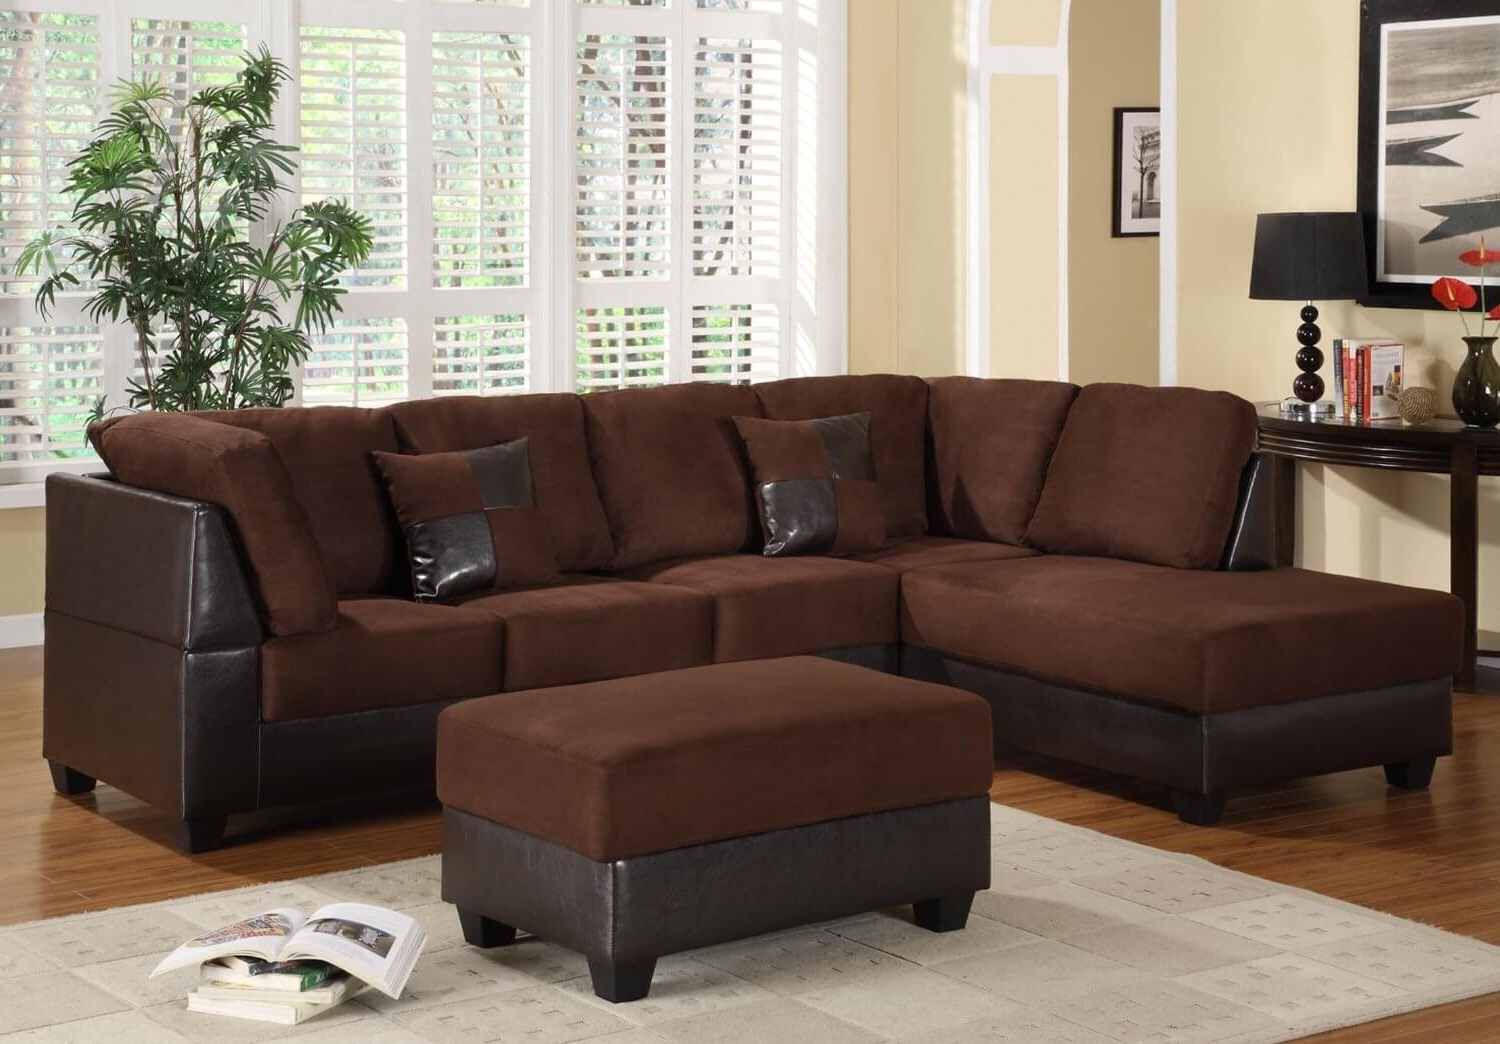 Widely Used 40 Cheap Sectional Sofas Under $500 For 2018 Regarding Sectional Sofas Under (View 4 of 20)